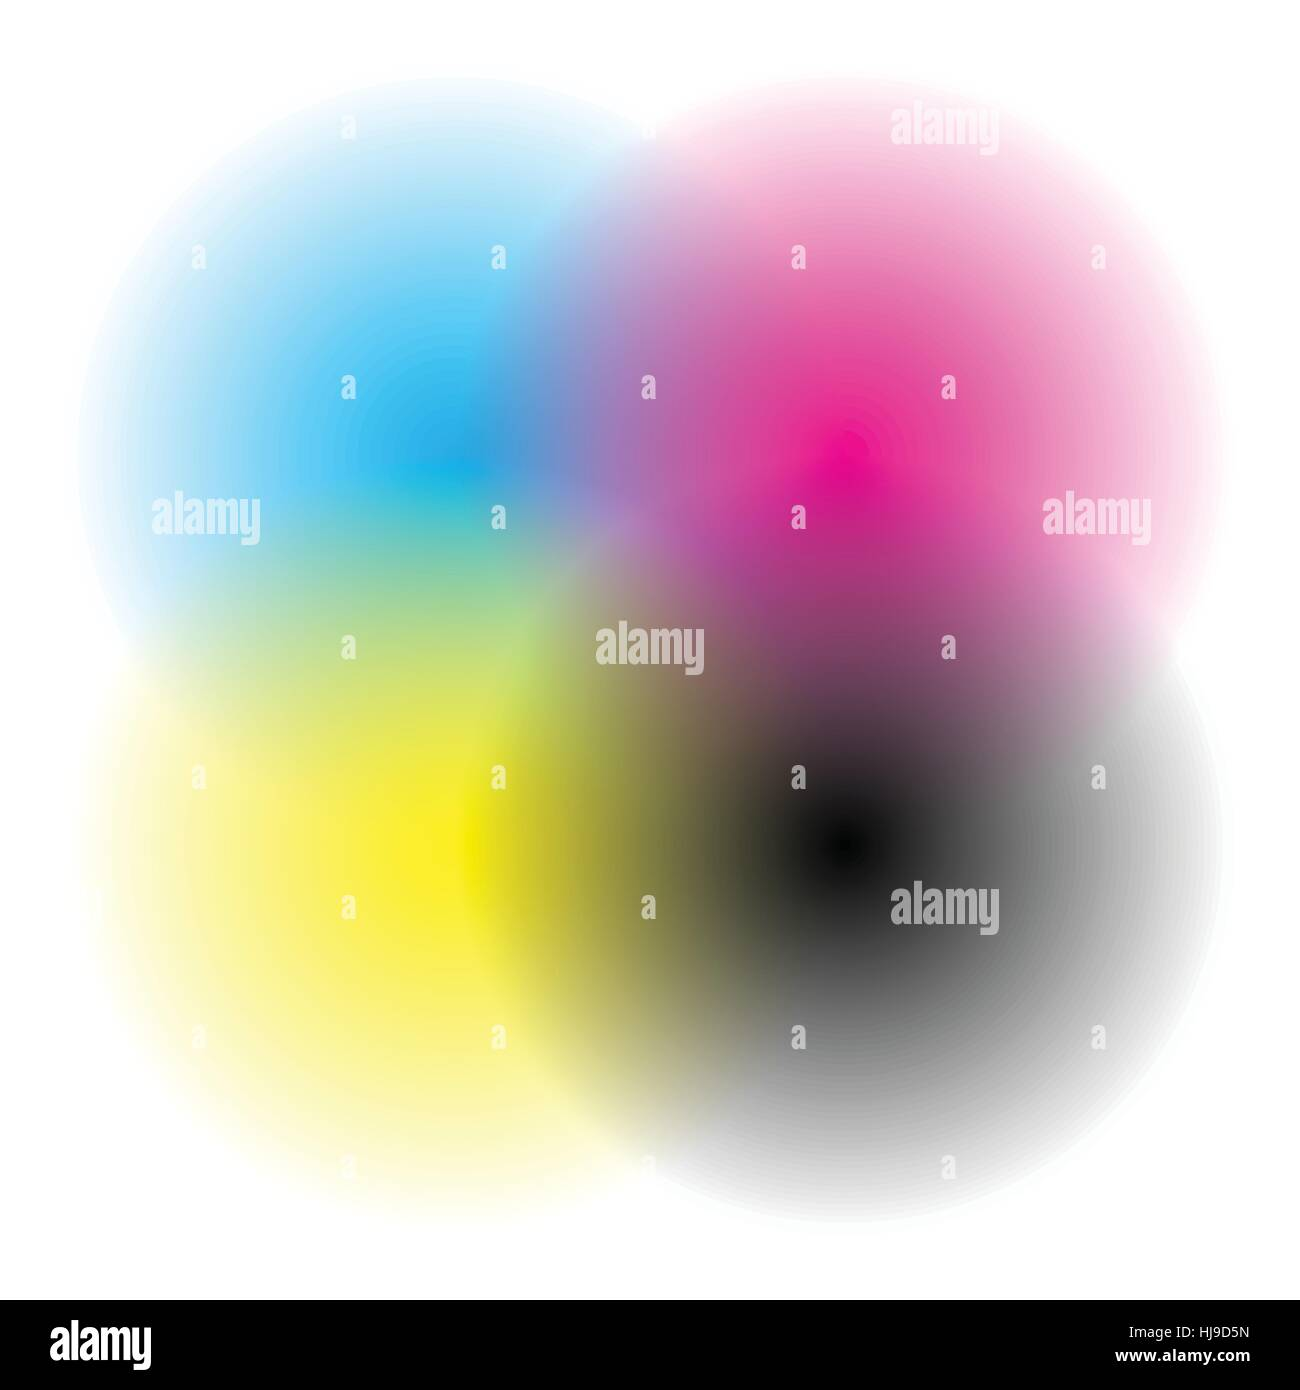 Color wheel / color chart with blended, faded circles for color theory concepts or as generic element Stock Vector